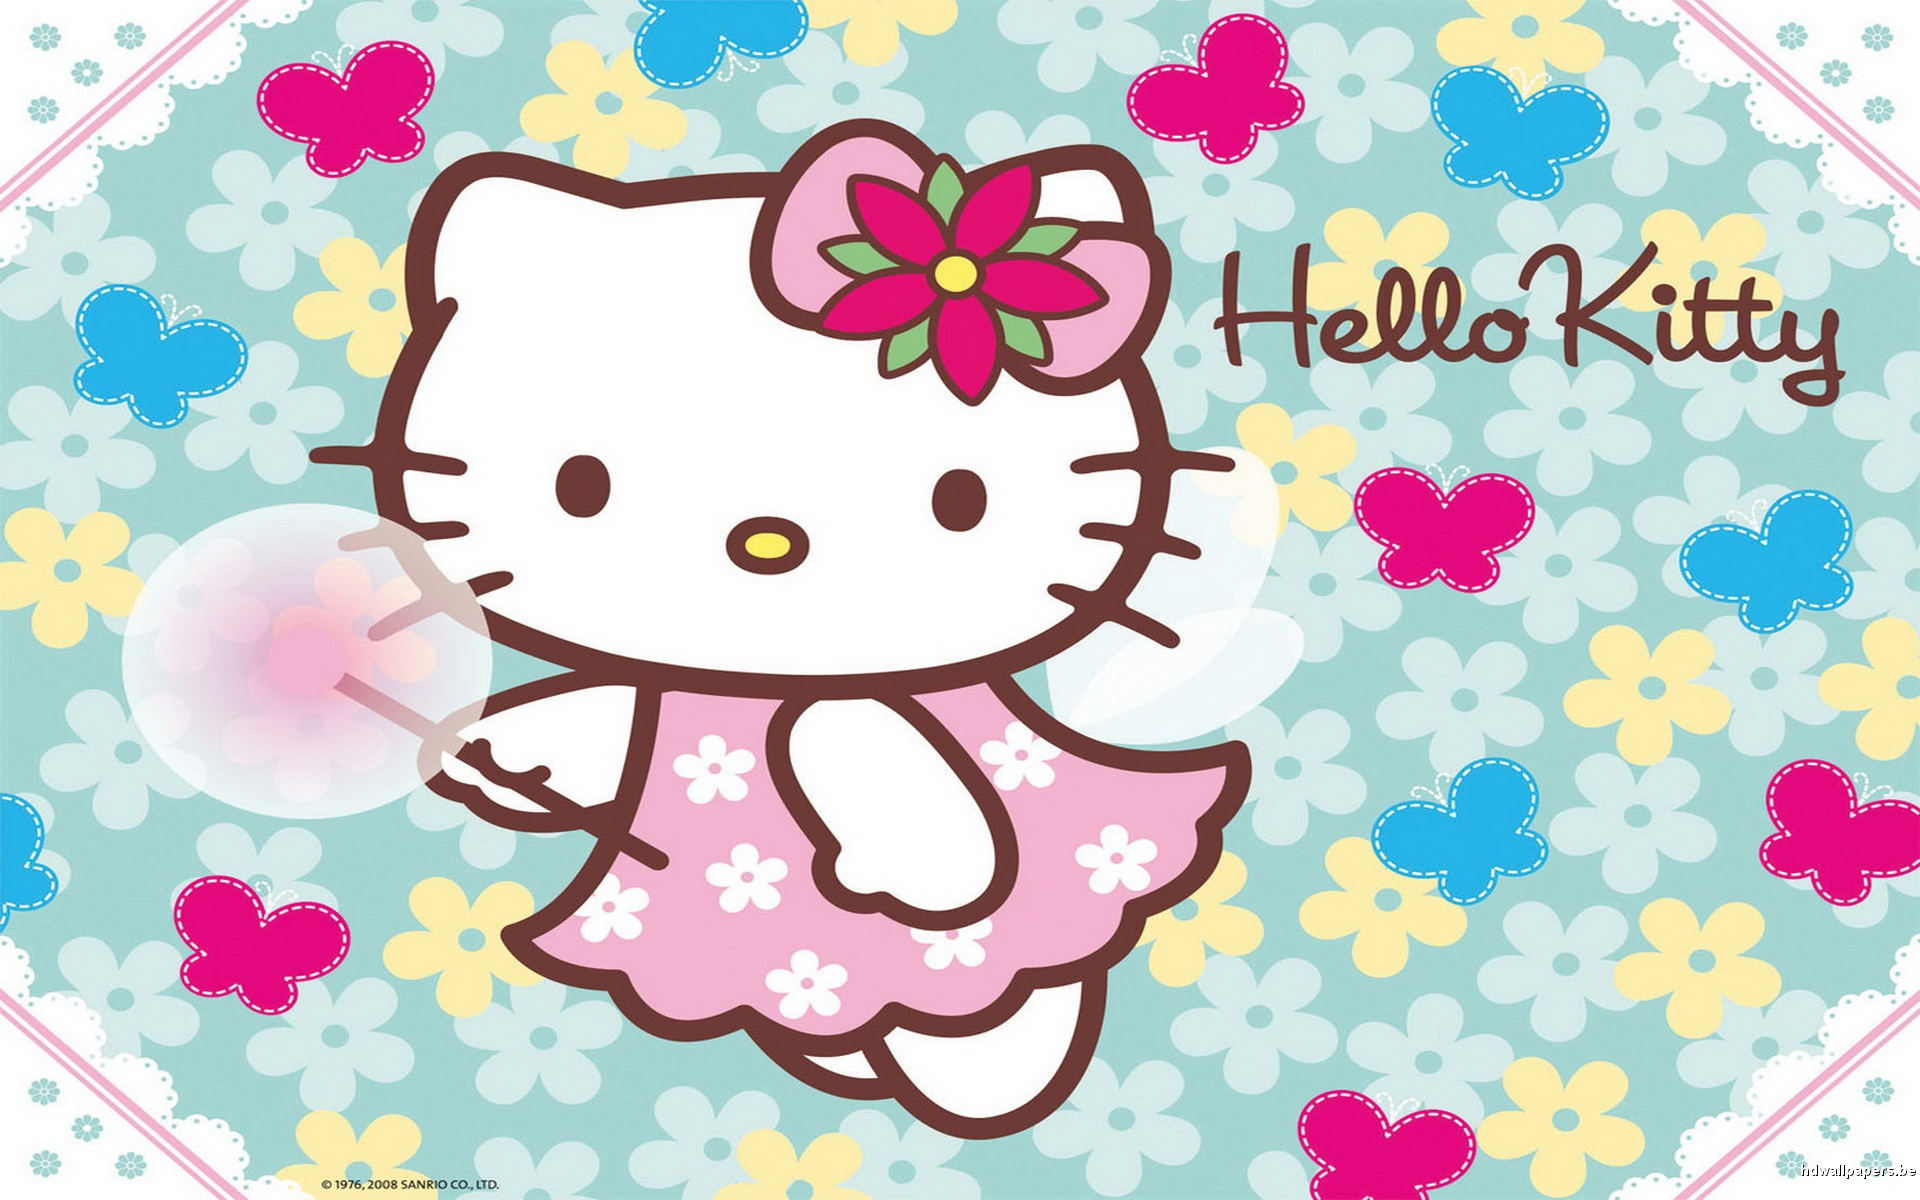 Hello Kitty HD Wallpaper Image for Mac   Cartoons Wallpapers 1920x1200